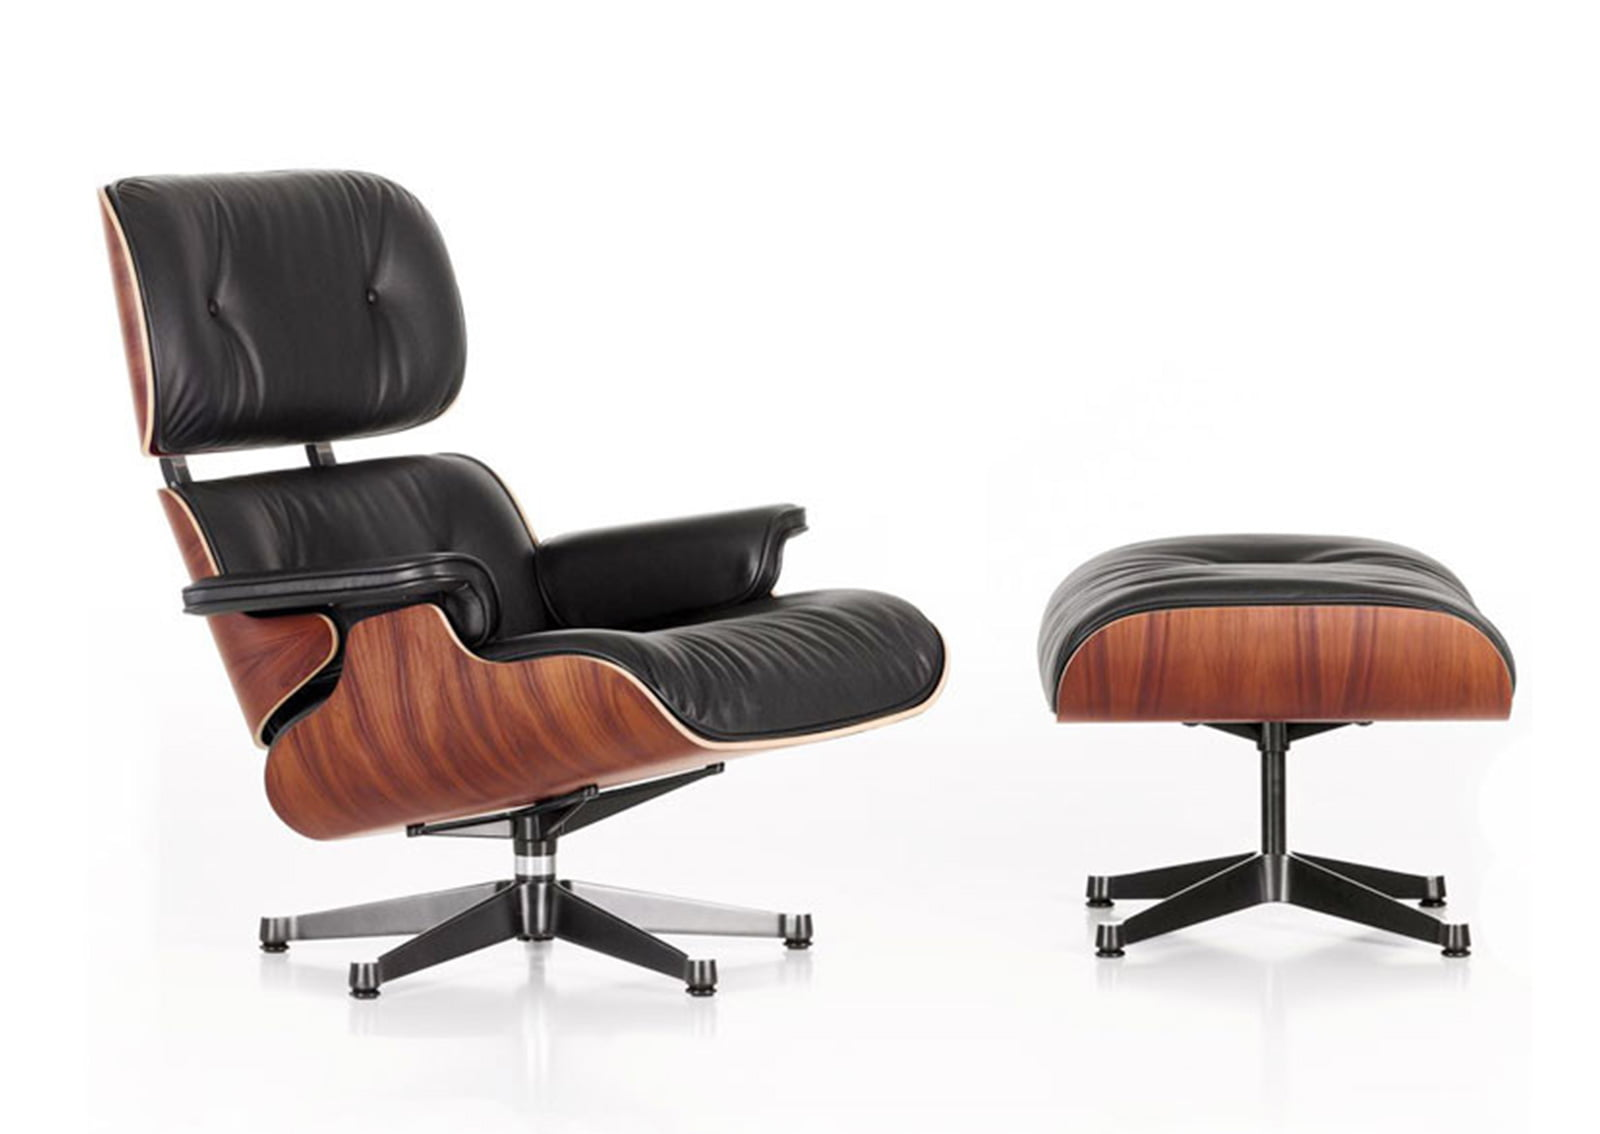 Eames Chairs | Eames Lounge Chair with Ottoman - FurnishPlus